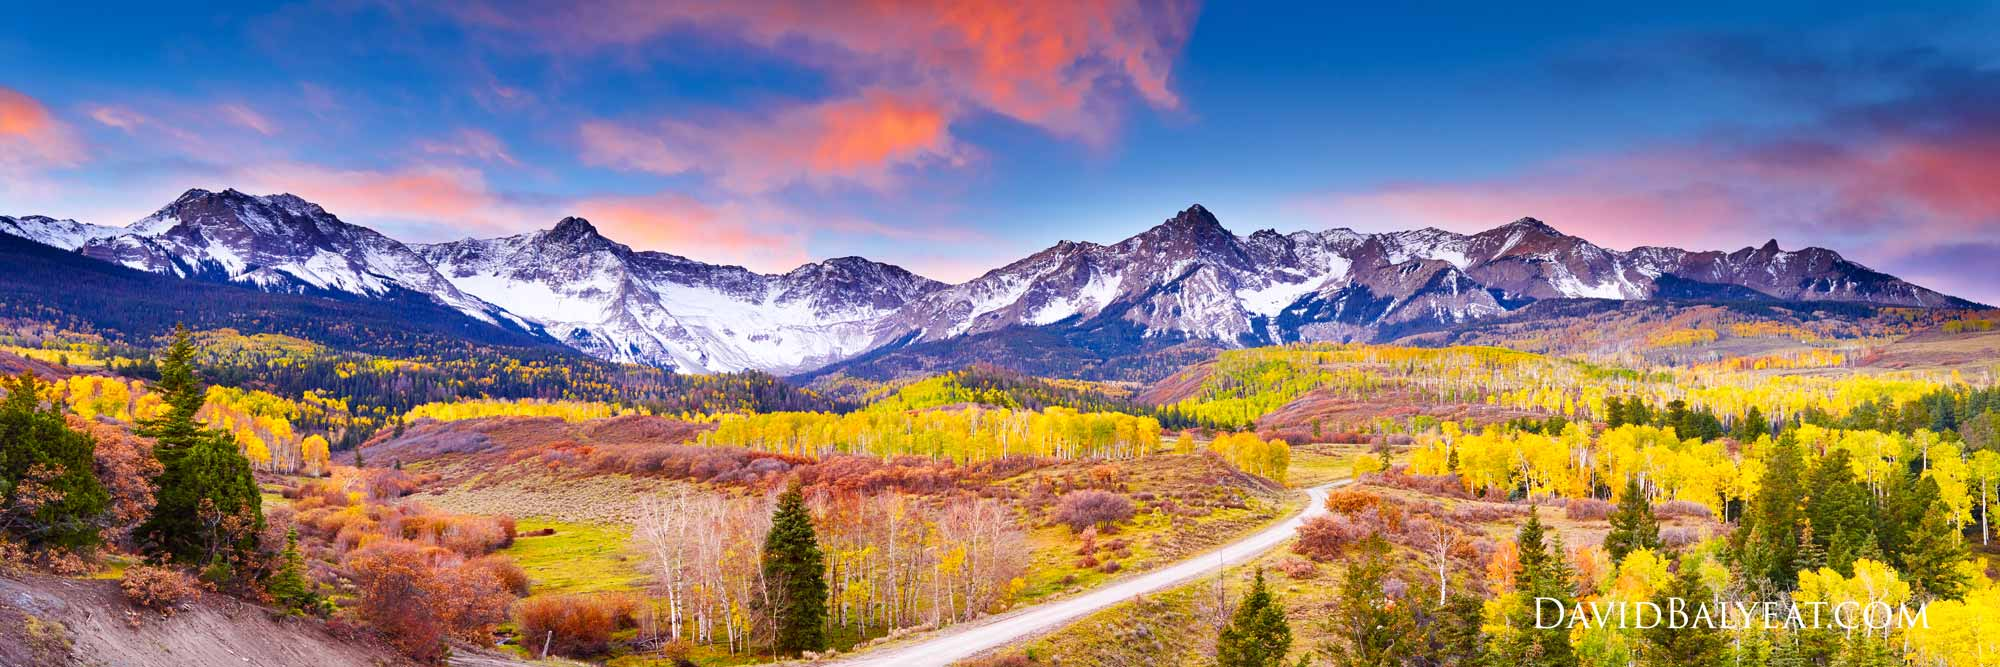 Painted valley san juan mountains david balyeat photography san juan mountains colorado dallas divide panoramic autumn fall foliage aspens high definition hd professional sciox Choice Image